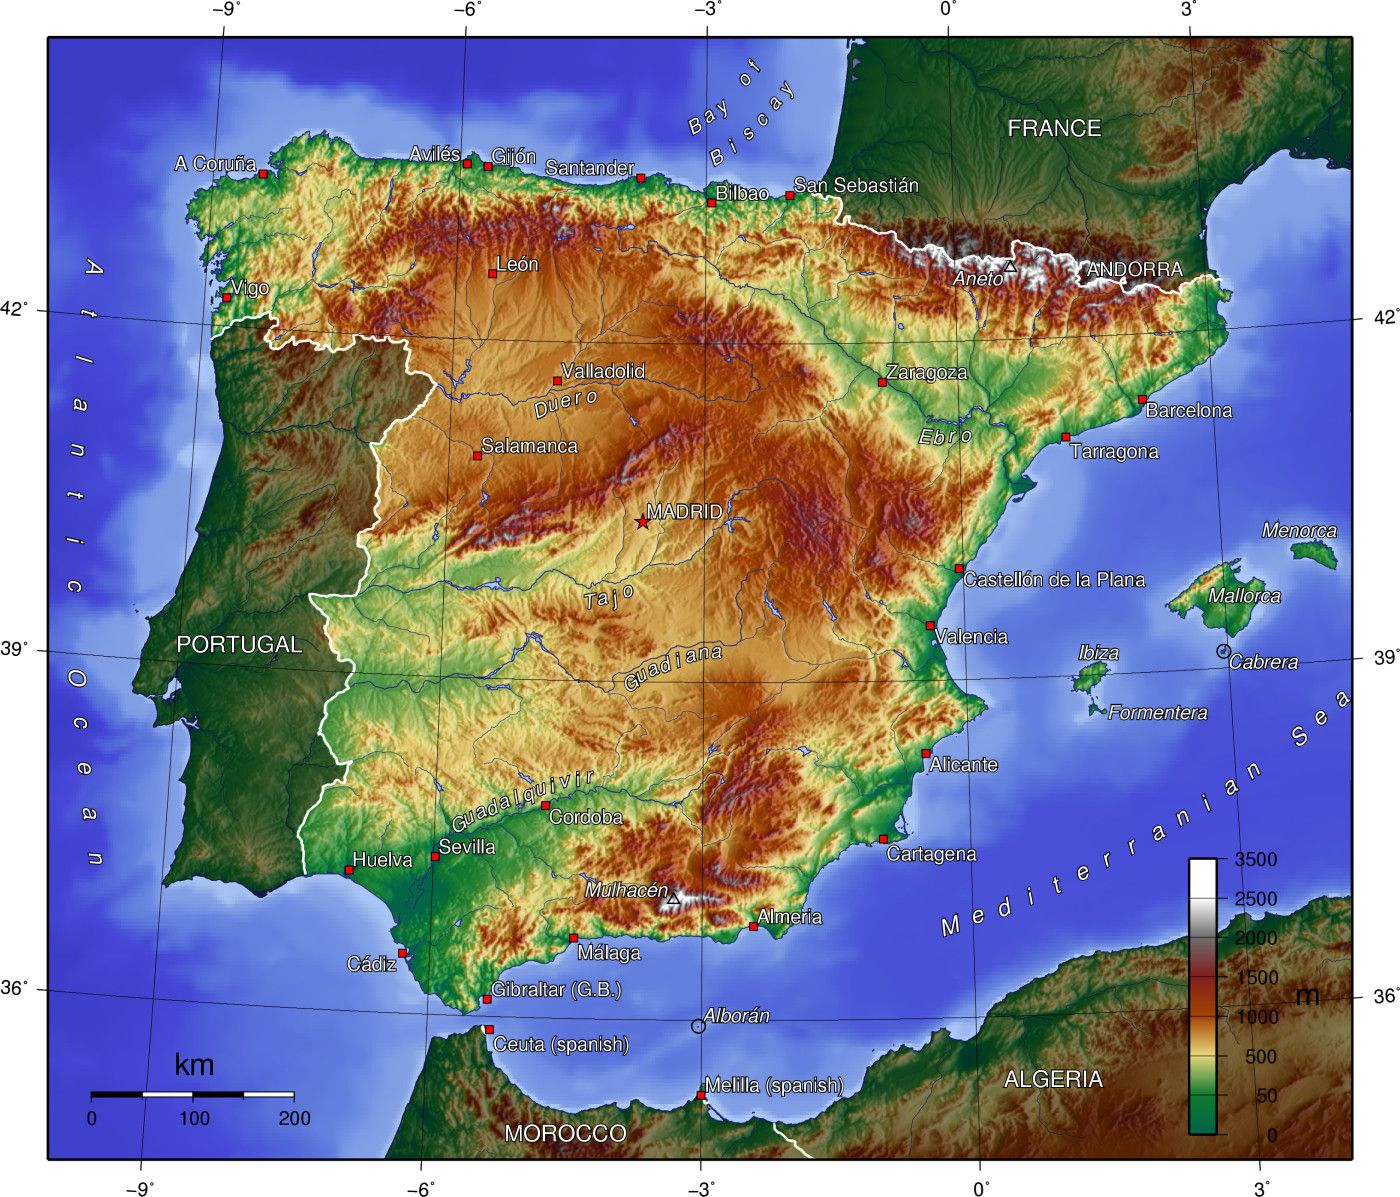 A topographical map of Spain. The Francès route crosses the